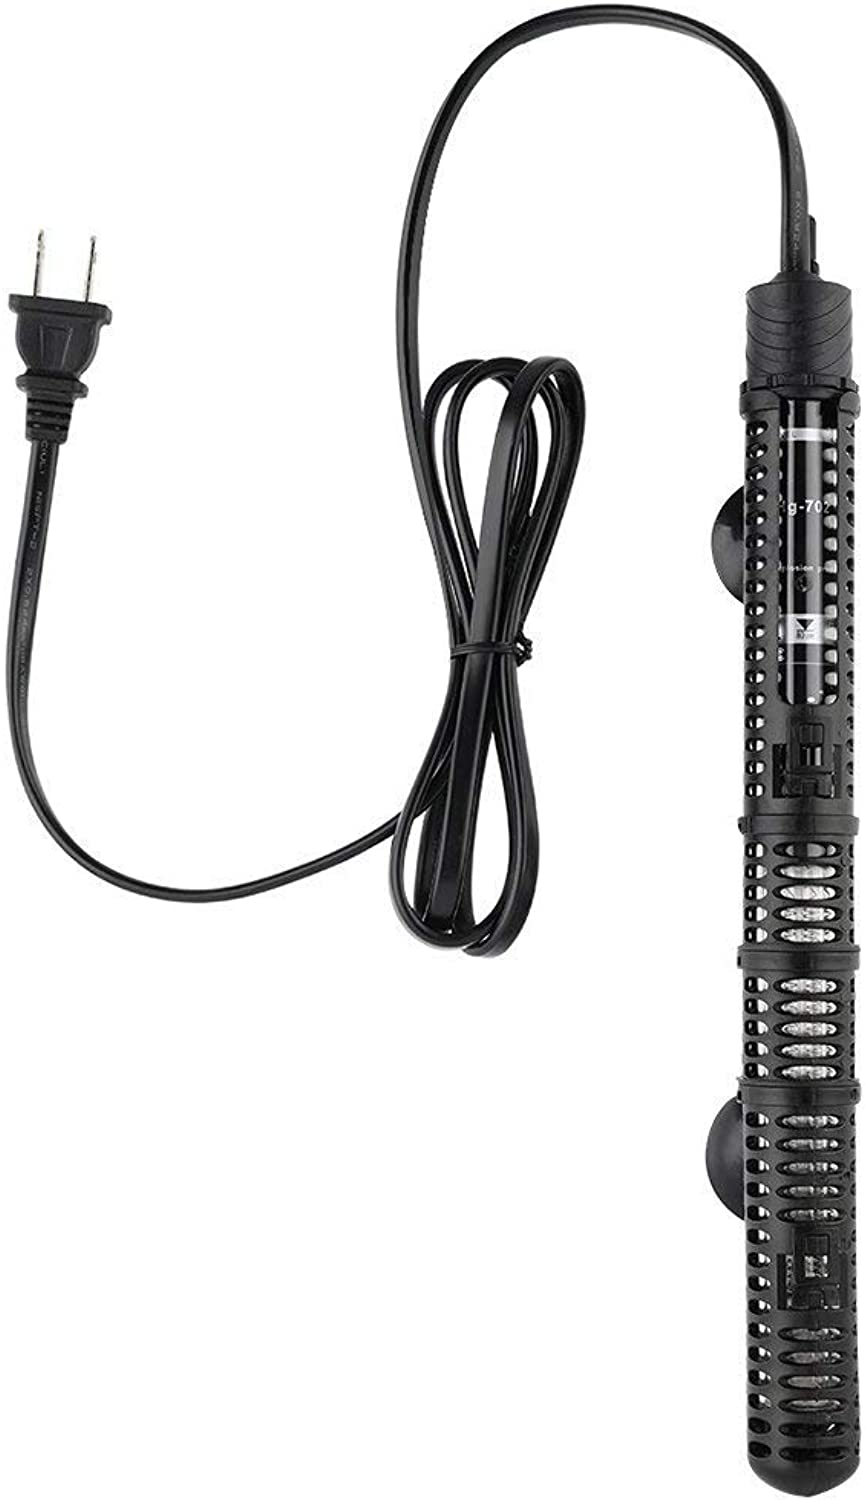 Hygger Submersible Aquarium Heater 100W, Fish Tank Water Heater Thermostat